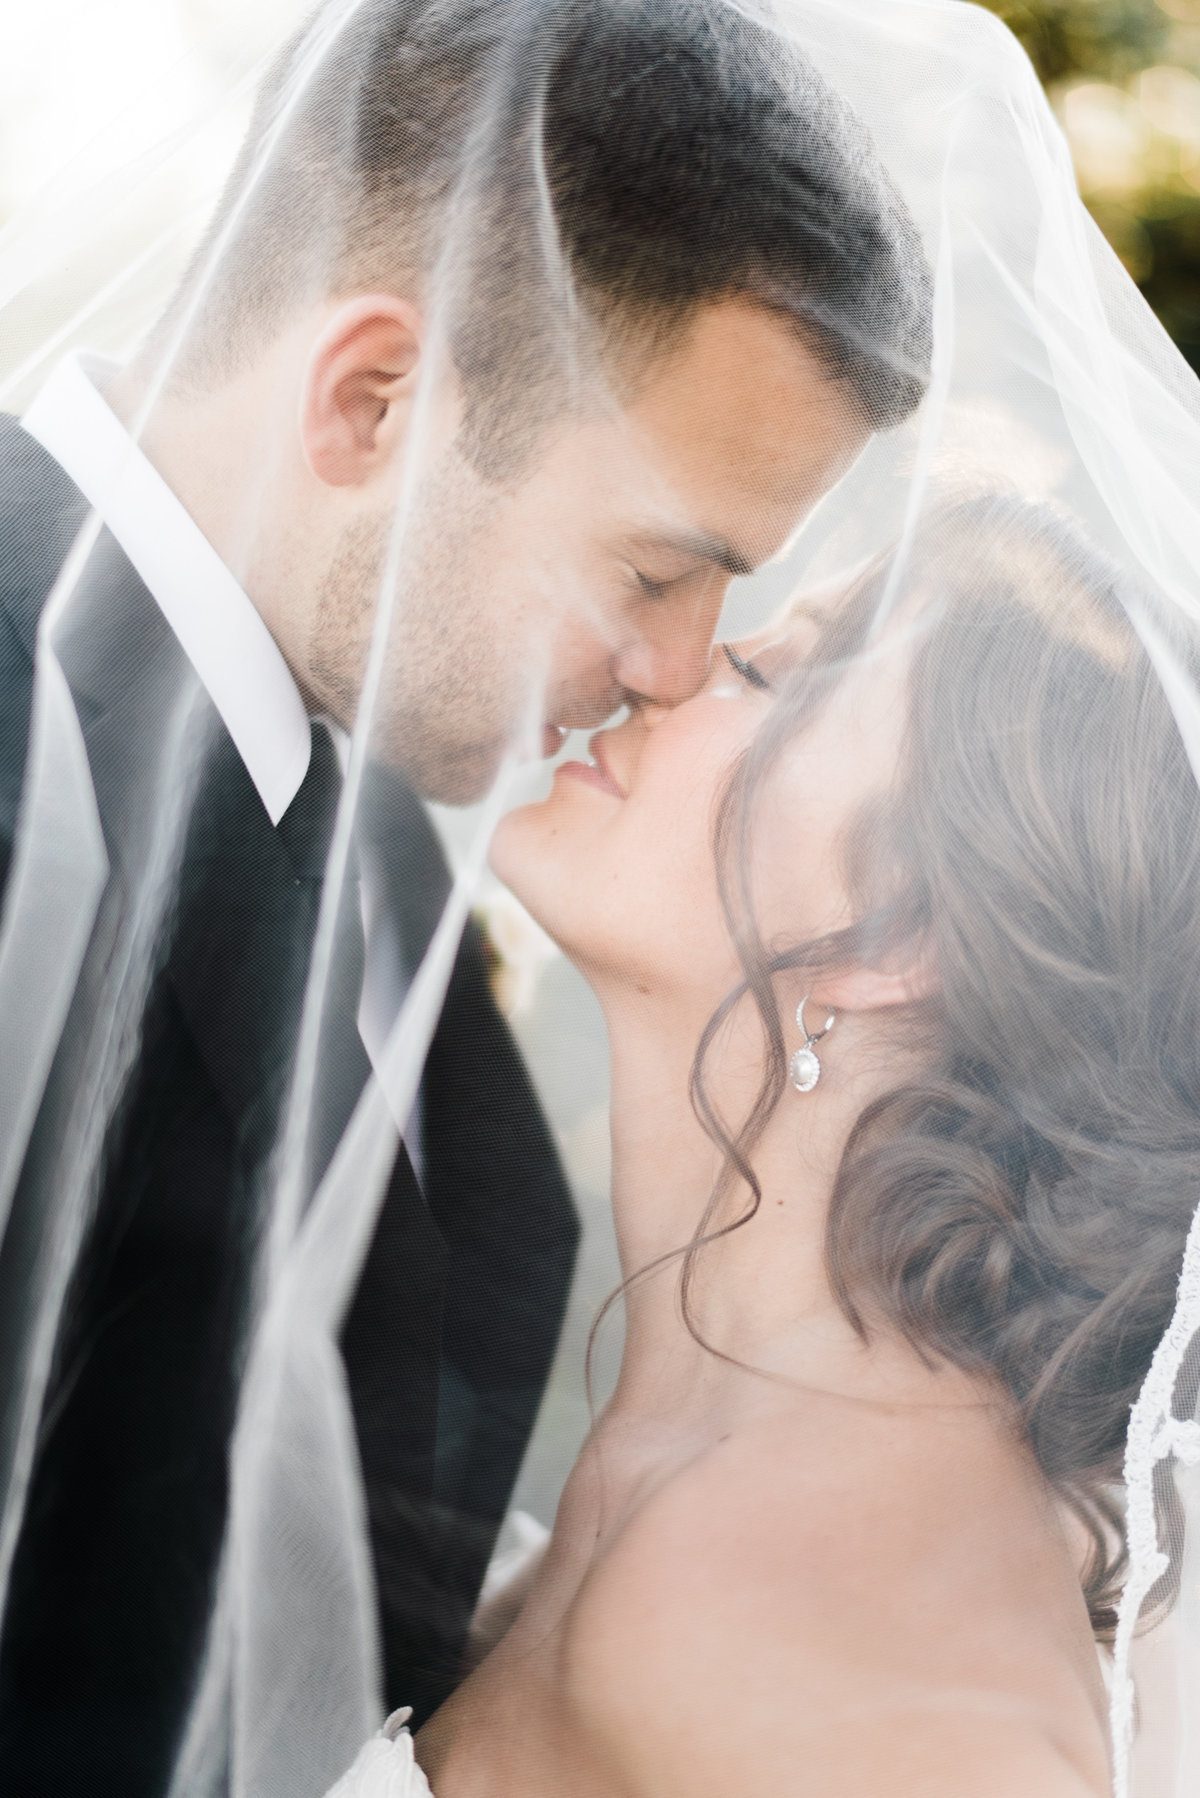 romantic fine art wedding portrait